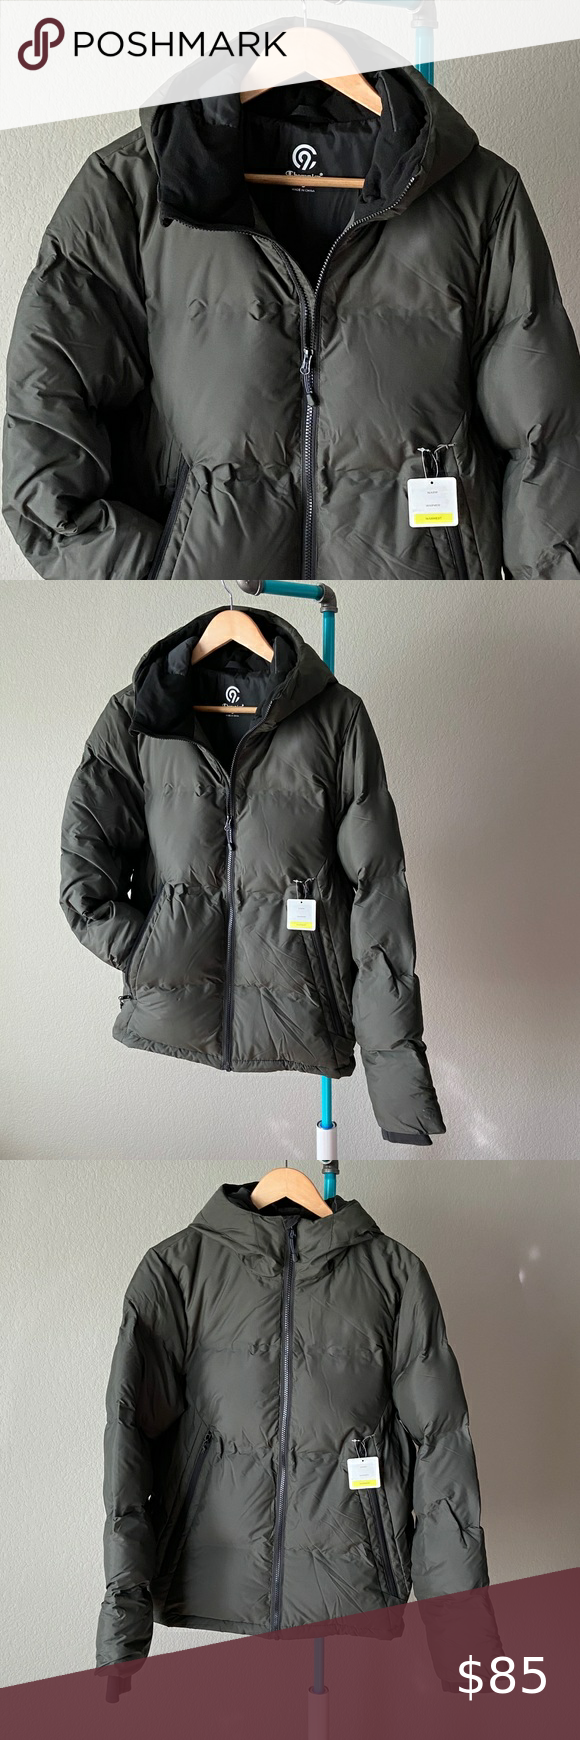 Champion Men S Lightweight Puffer Jacket With Hood Brand Champion Size S Condition Nwt Good Looking Me Hooded Jacket Silver Puffer Jacket Mens Puffer Jacket [ 1740 x 580 Pixel ]